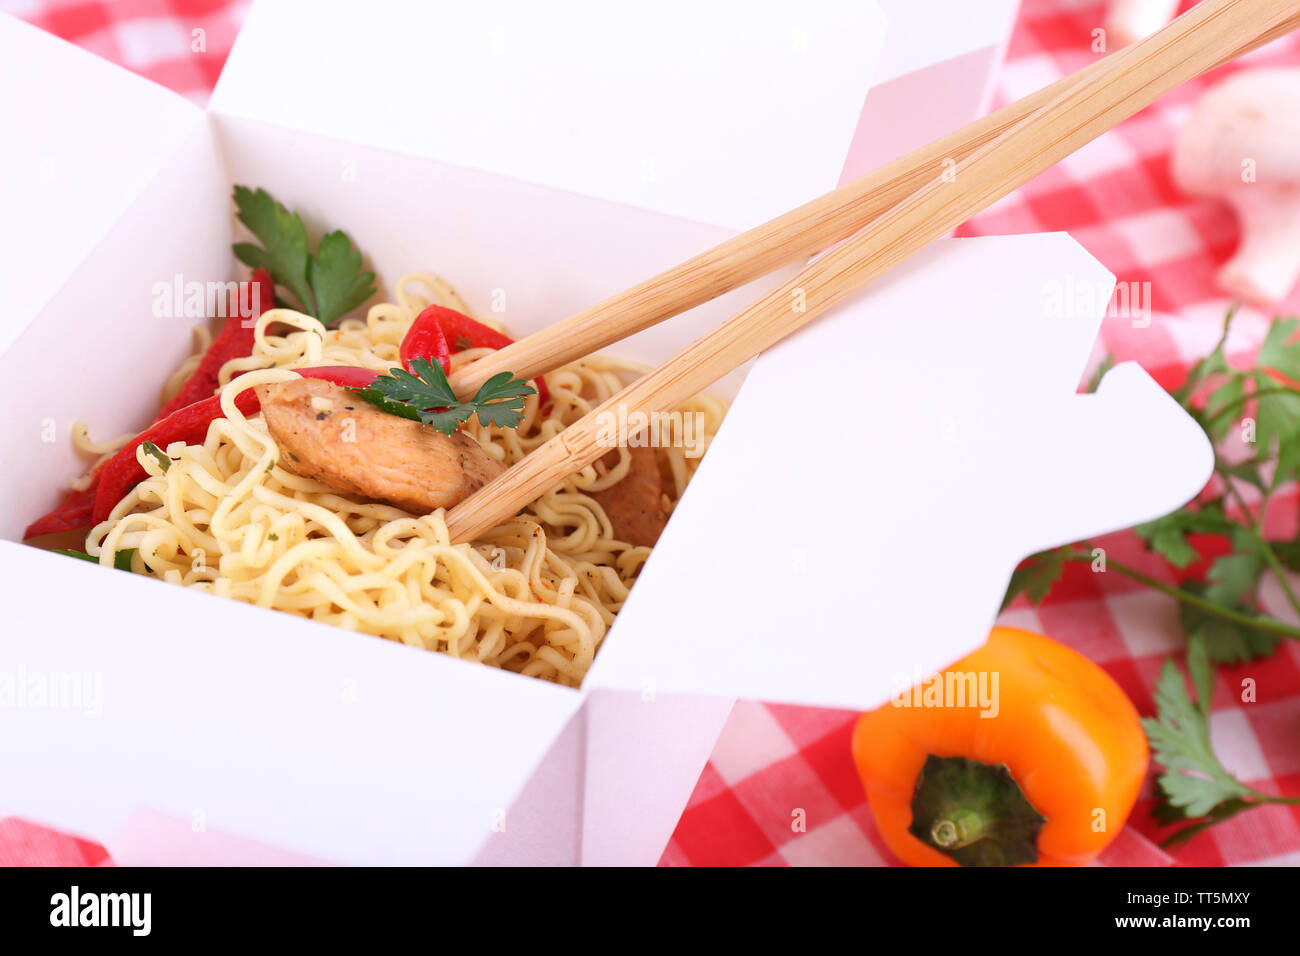 Chinese noodles and sticks in takeaway box on fabric background - Stock Image